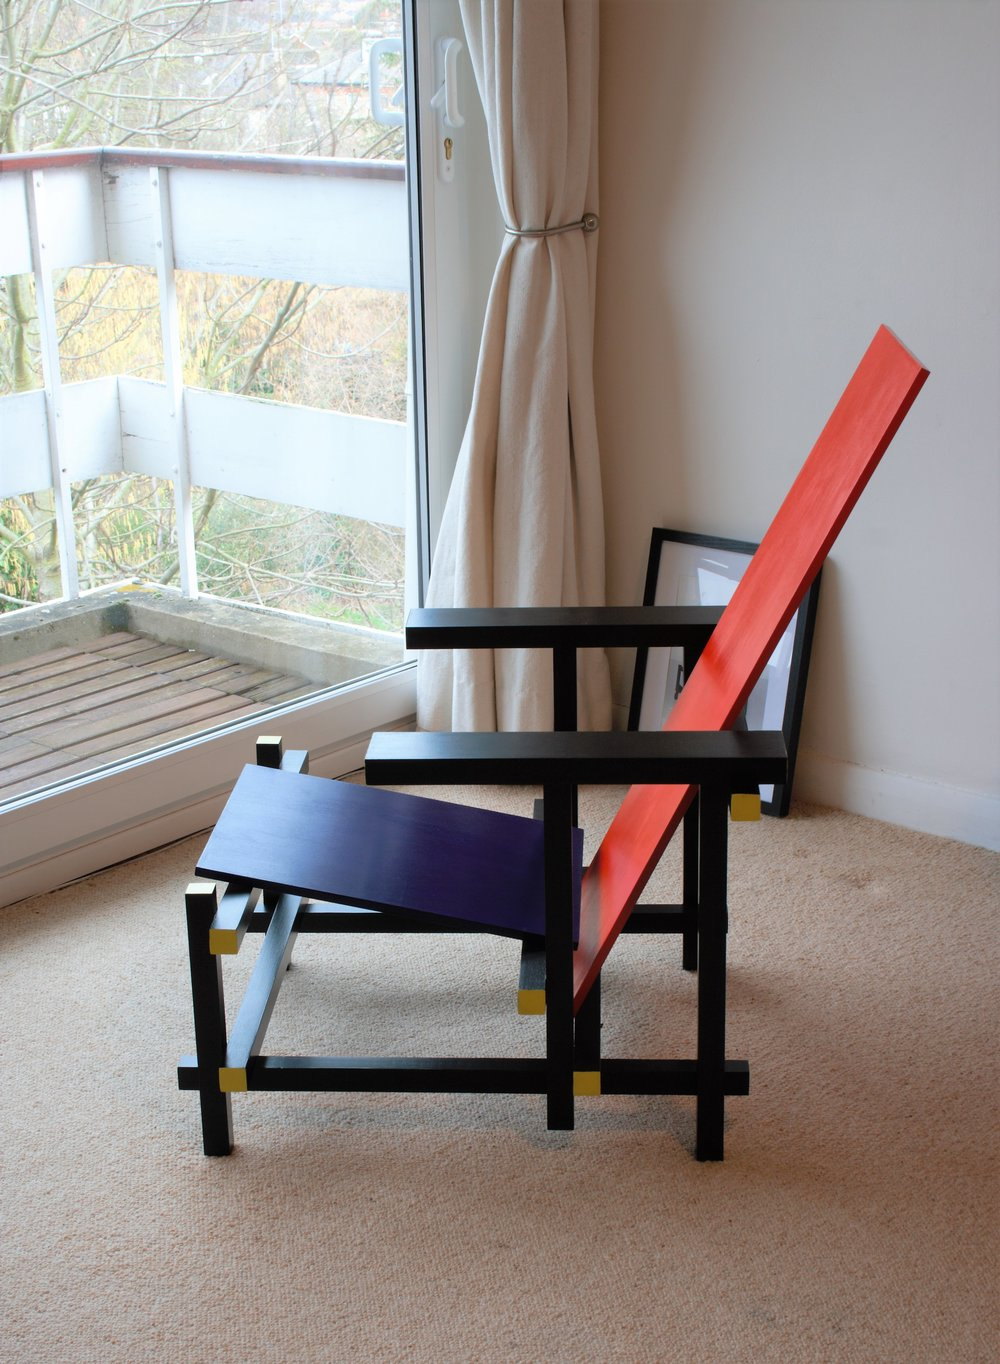 Heliconia_Furniture_Rietveld_RedBlueChair6.jpg